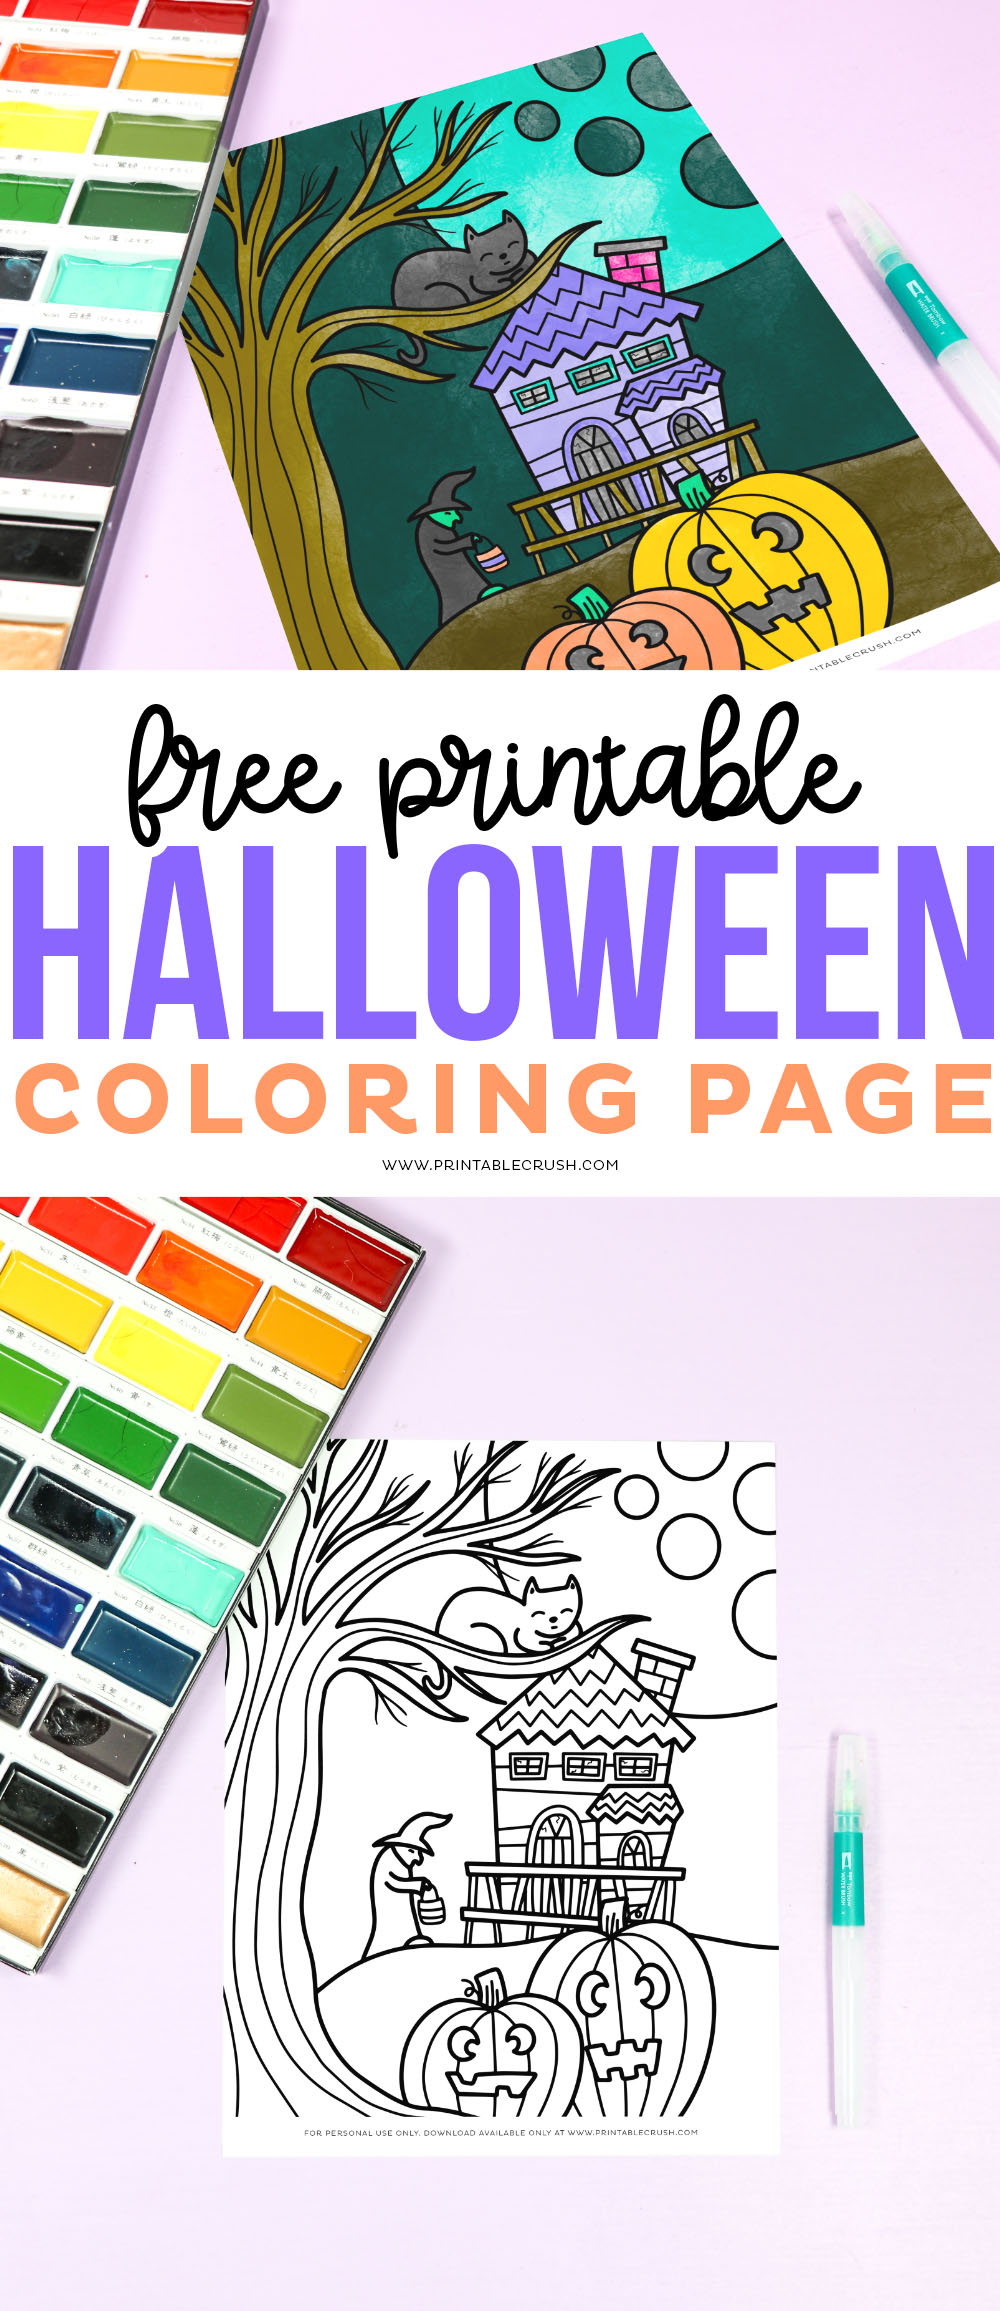 Free Printable Halloween Coloring Page - Printable Crush